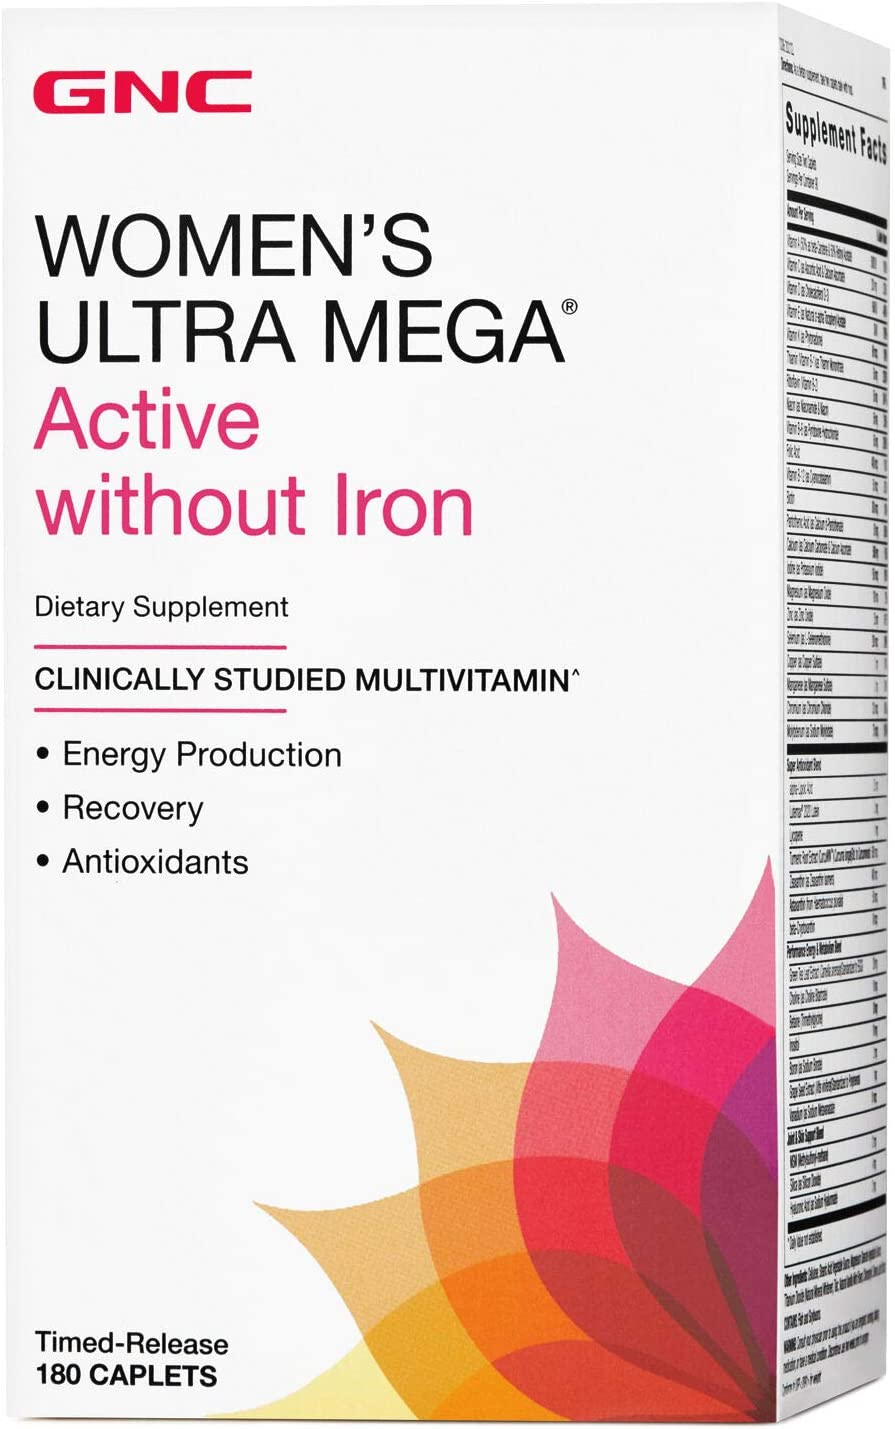 GNC Womens Ultra Mega Active Without Iron Multivitamin for Women, 180 Caplets, for Increased Energy, Metablism, and Calorie Burning